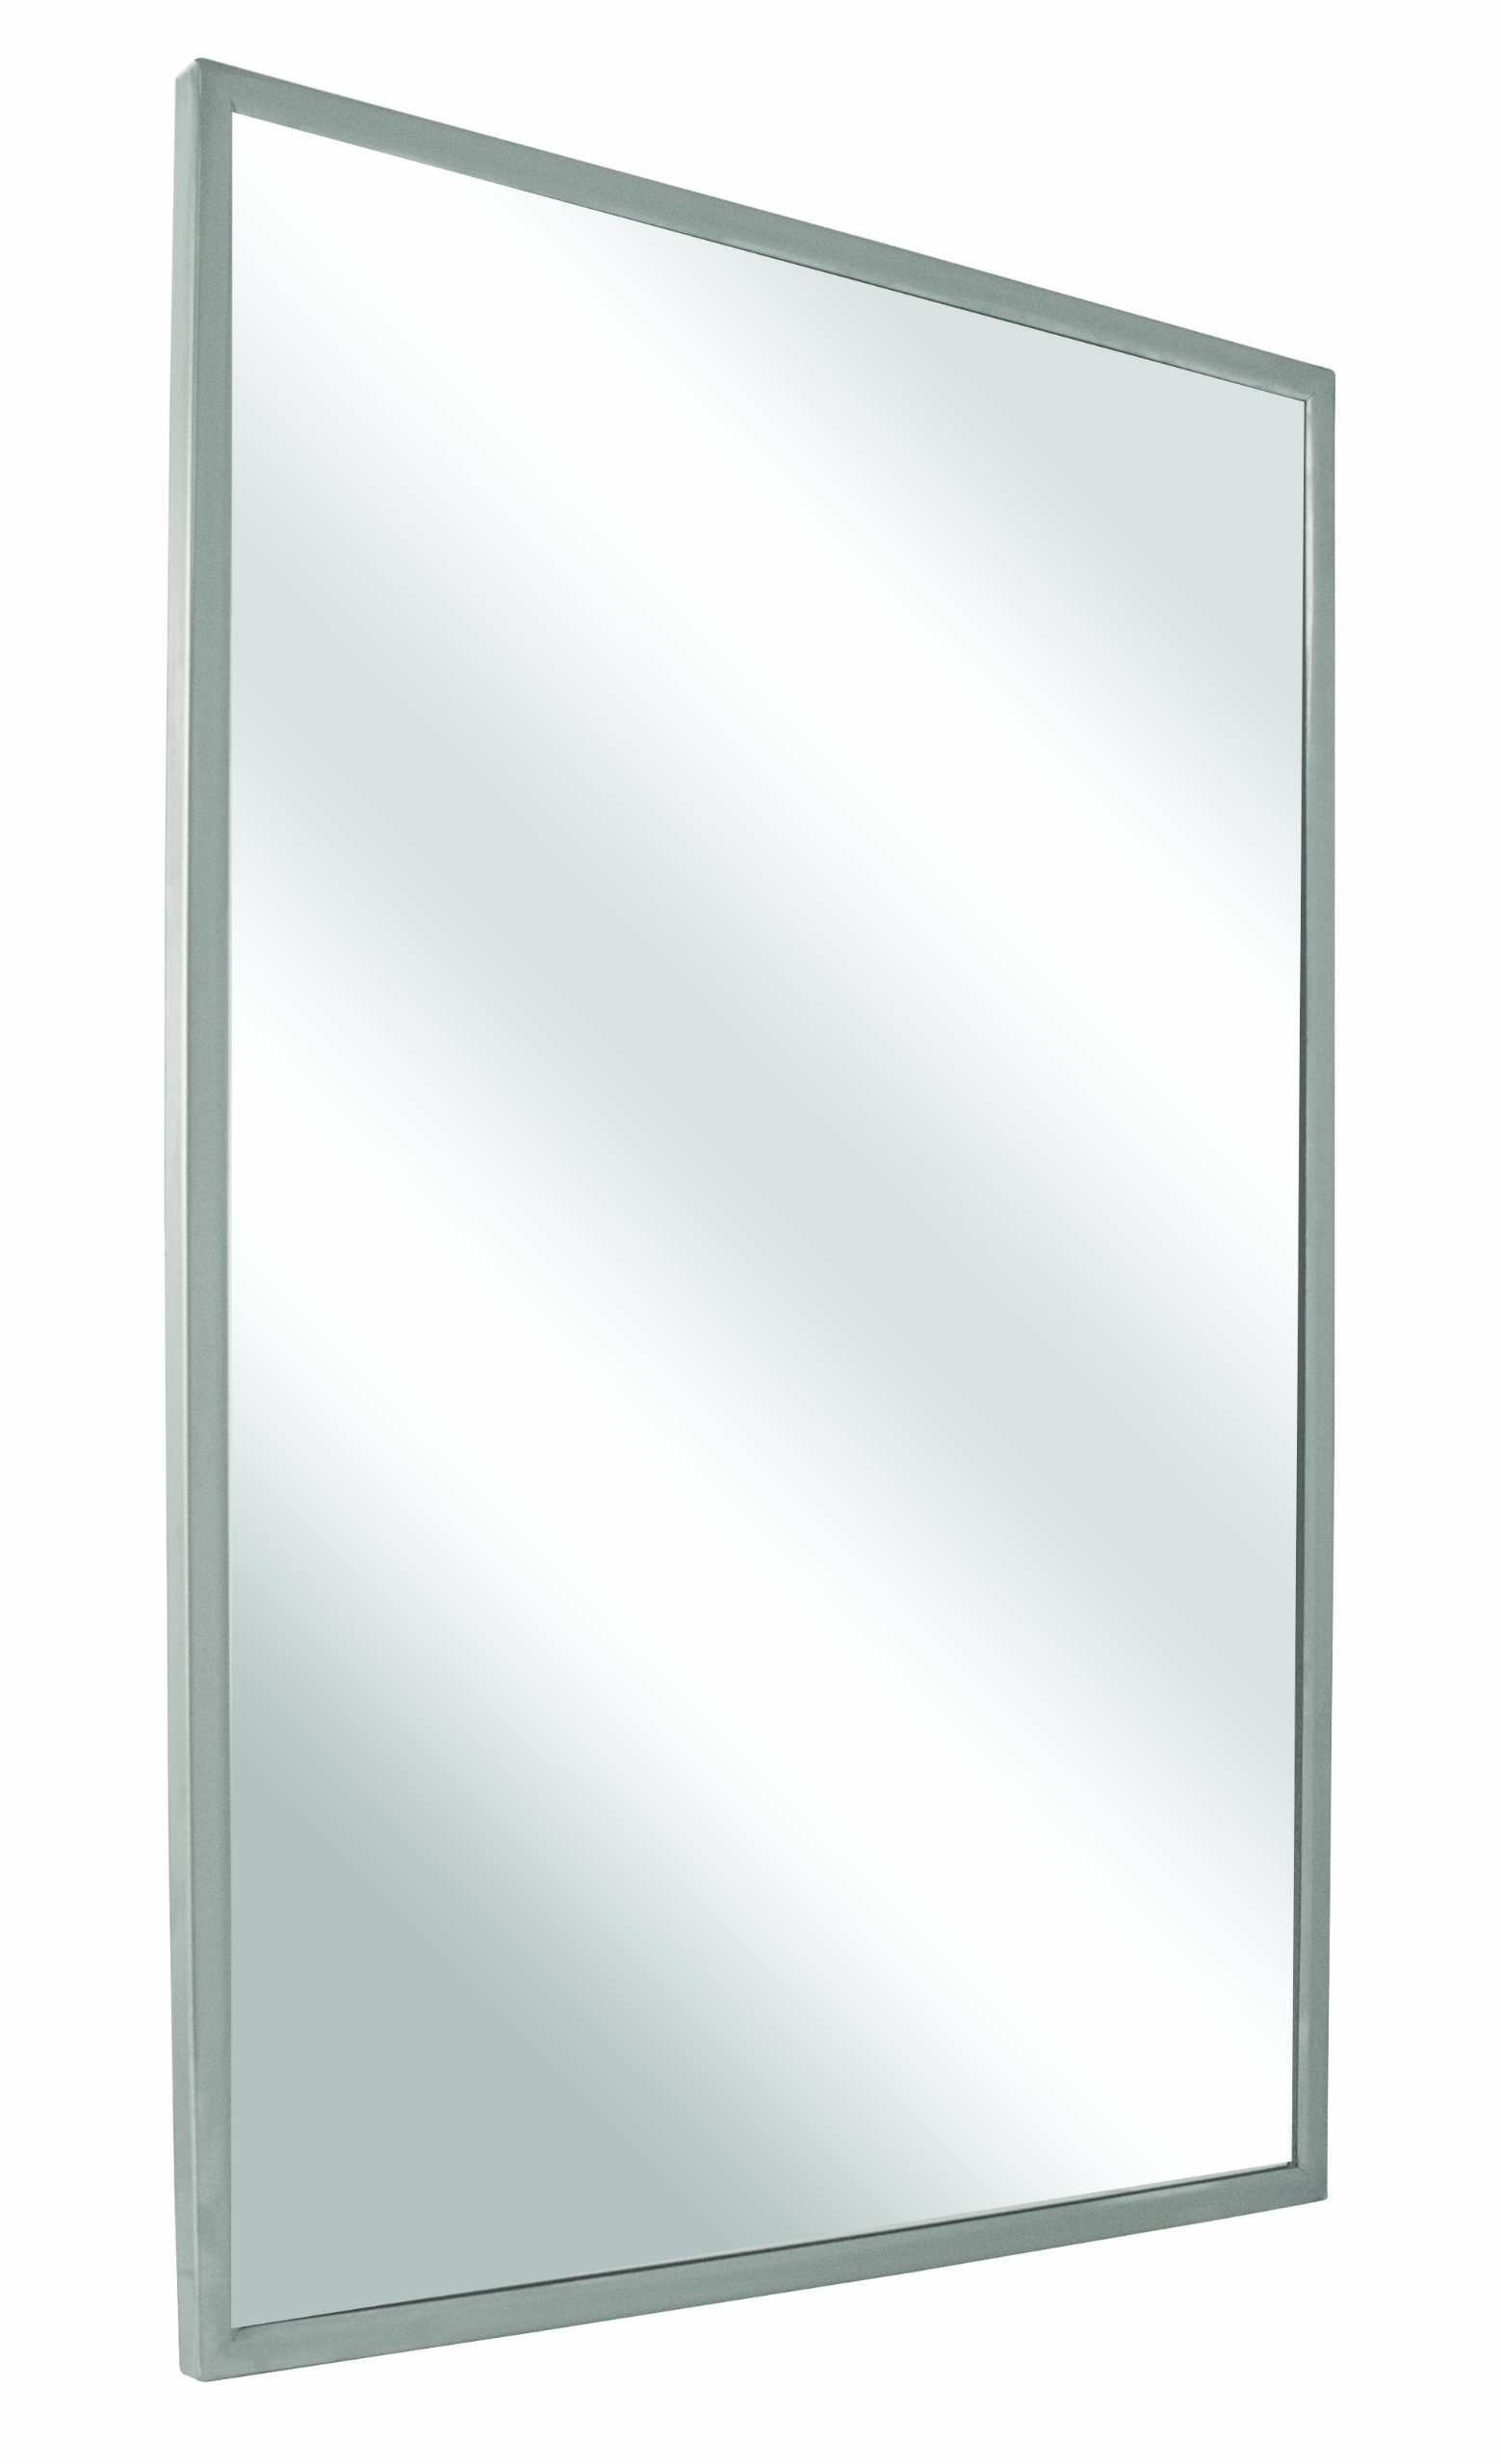 Bradley 781-018300 Roll-Formed Channel Frame Float Glass Mirror, 18'' Width x 30'' Height